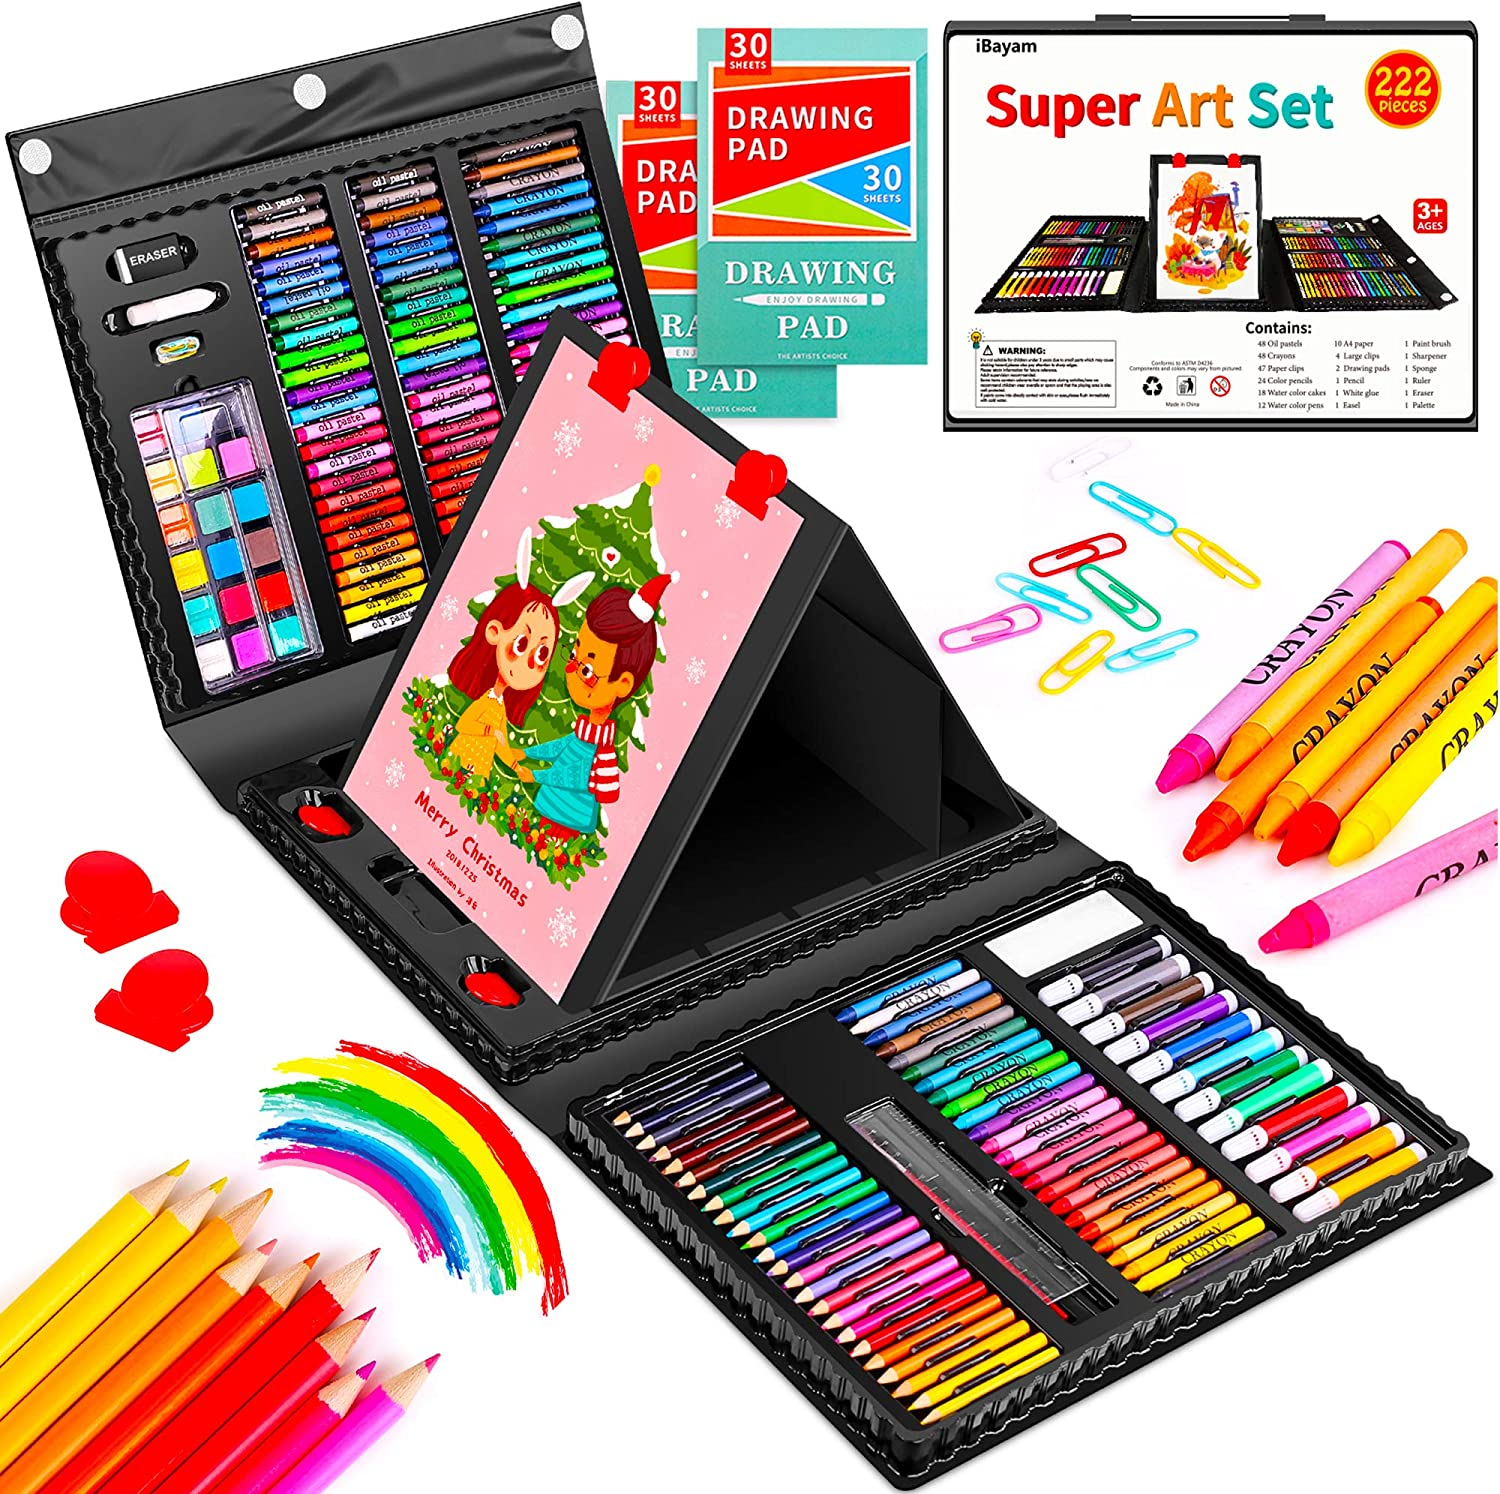 Art Set, iBayam 222 Pack Art Supplies Drawing Kit for Kids Girls Boys Teens Artist Children 5 6 7 8 9 11 12, Deluxe Beginners Art Case Gift with Trifold Easel, 2 Sketch Pads, Pastels, Crayons, Pencils